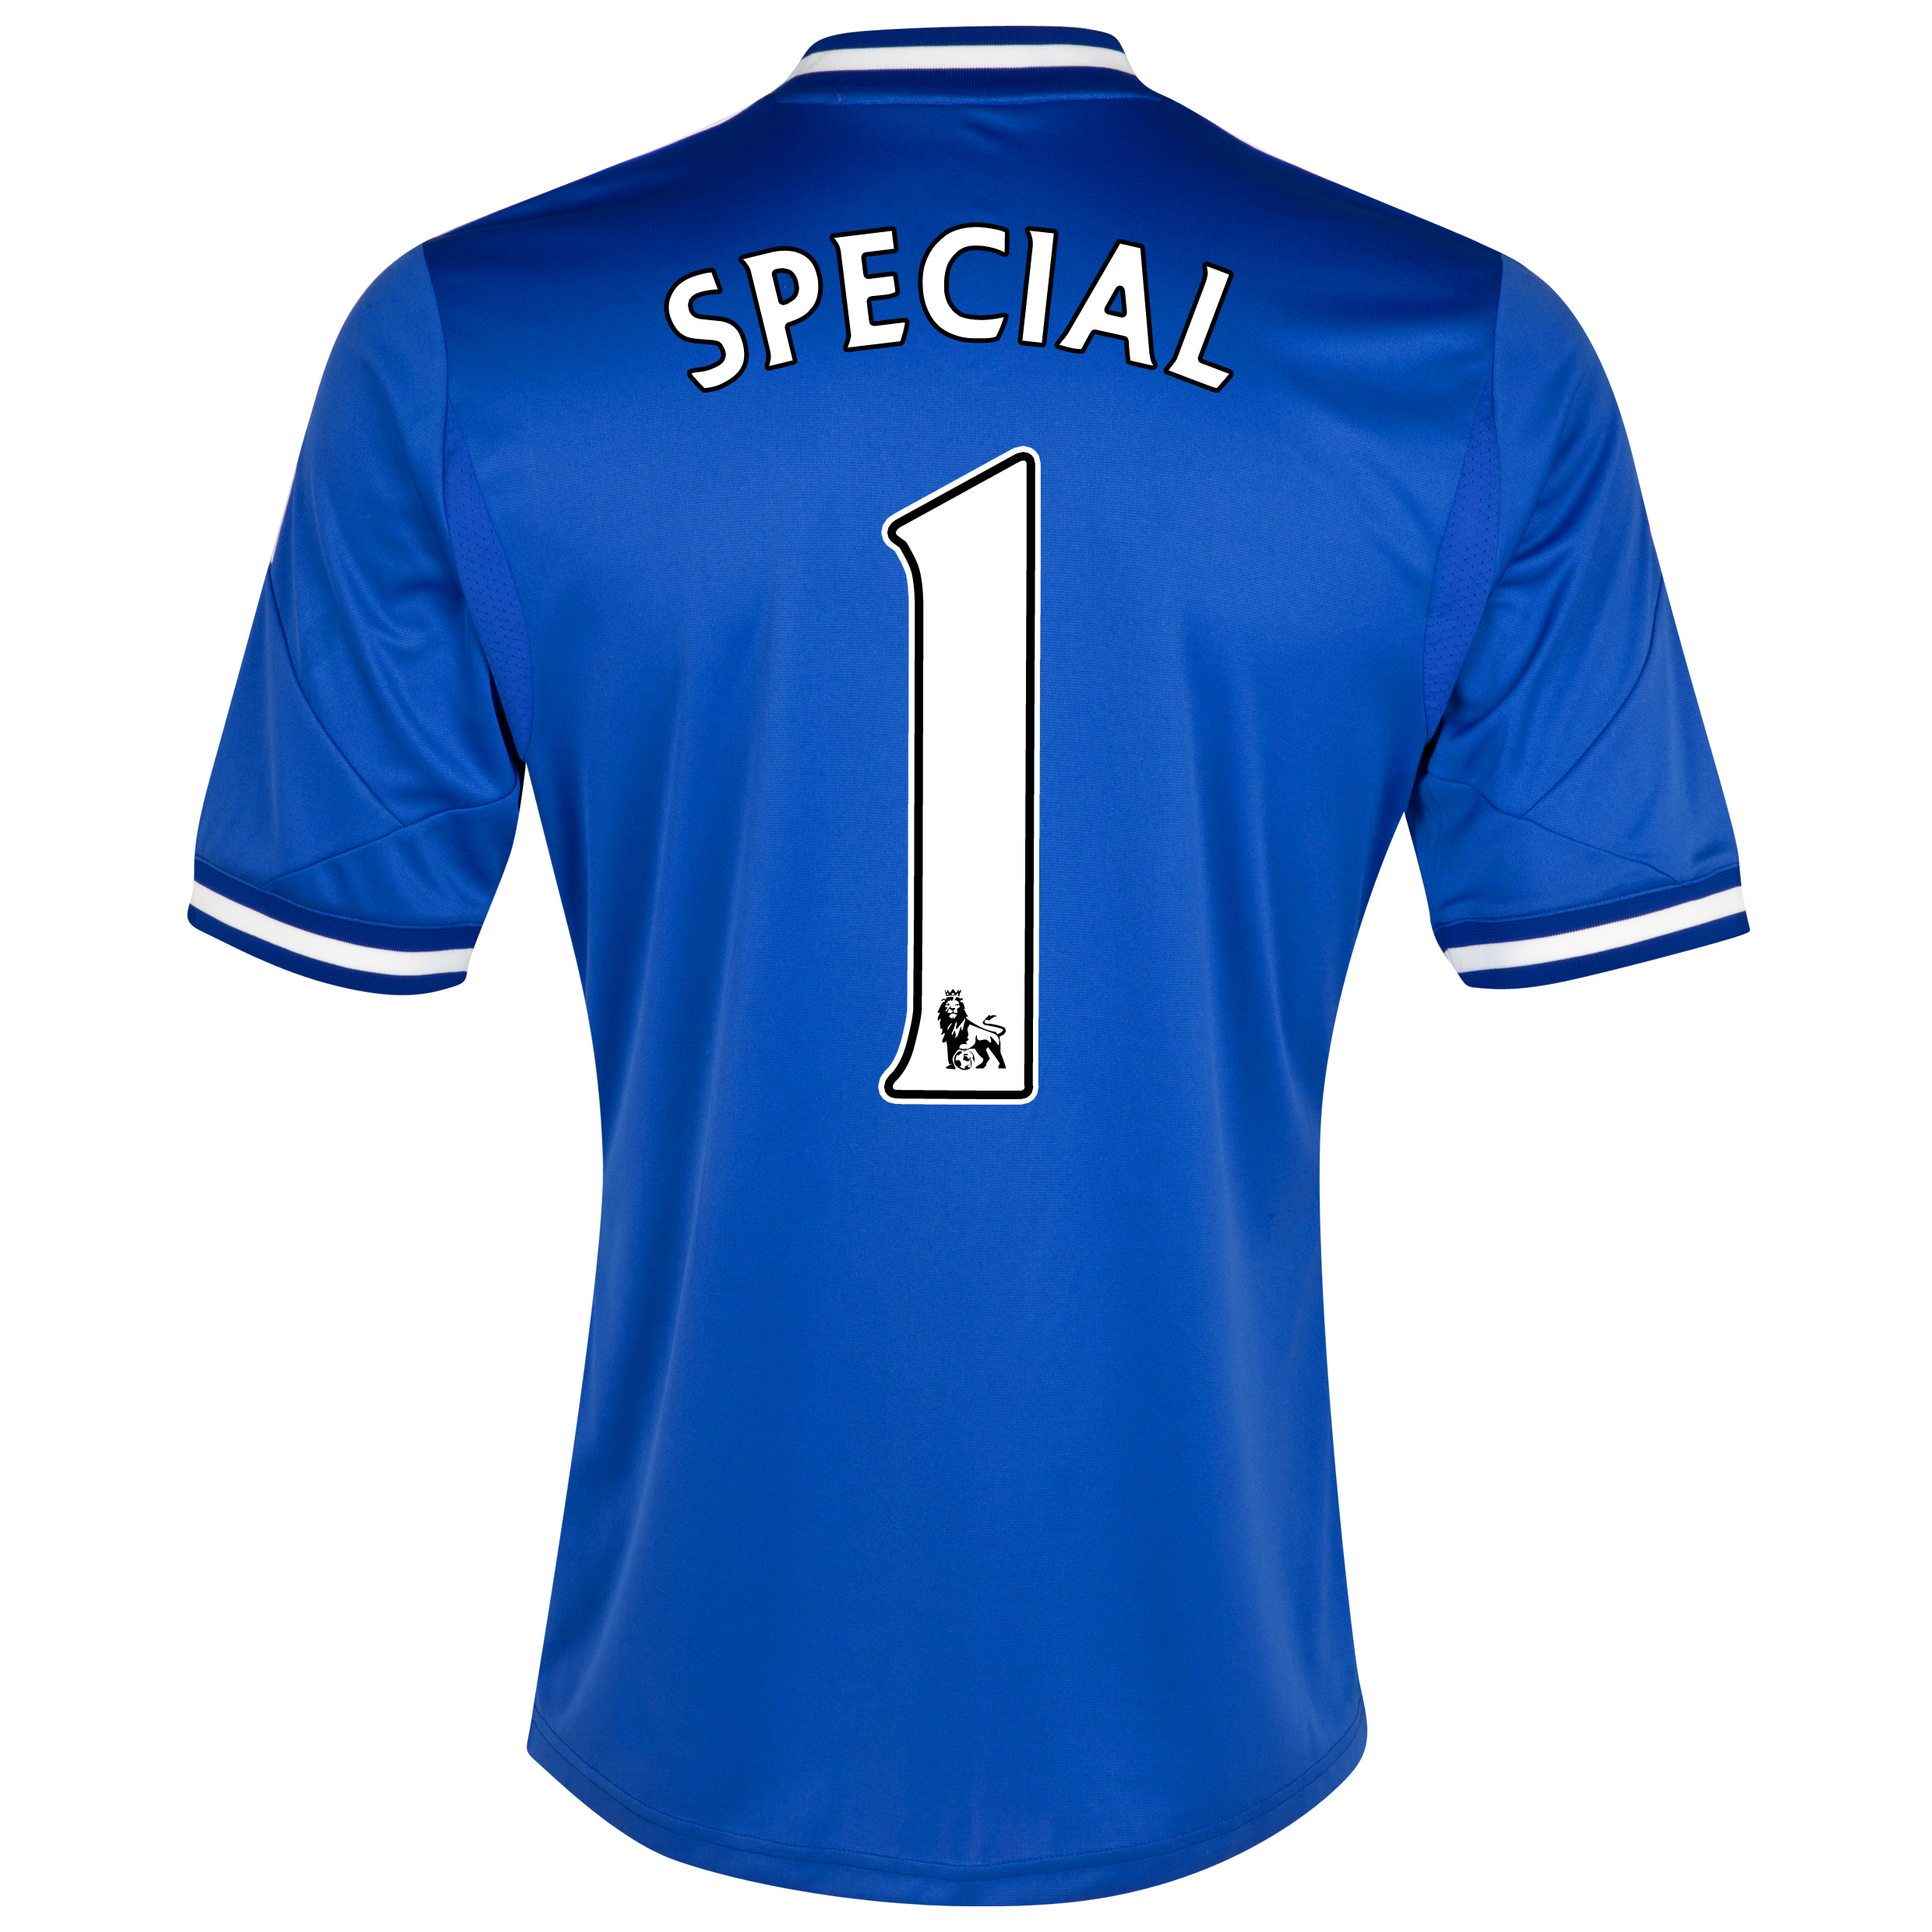 Chelsea Home Shirt 2013/14 - Outsize with Special 1 printing